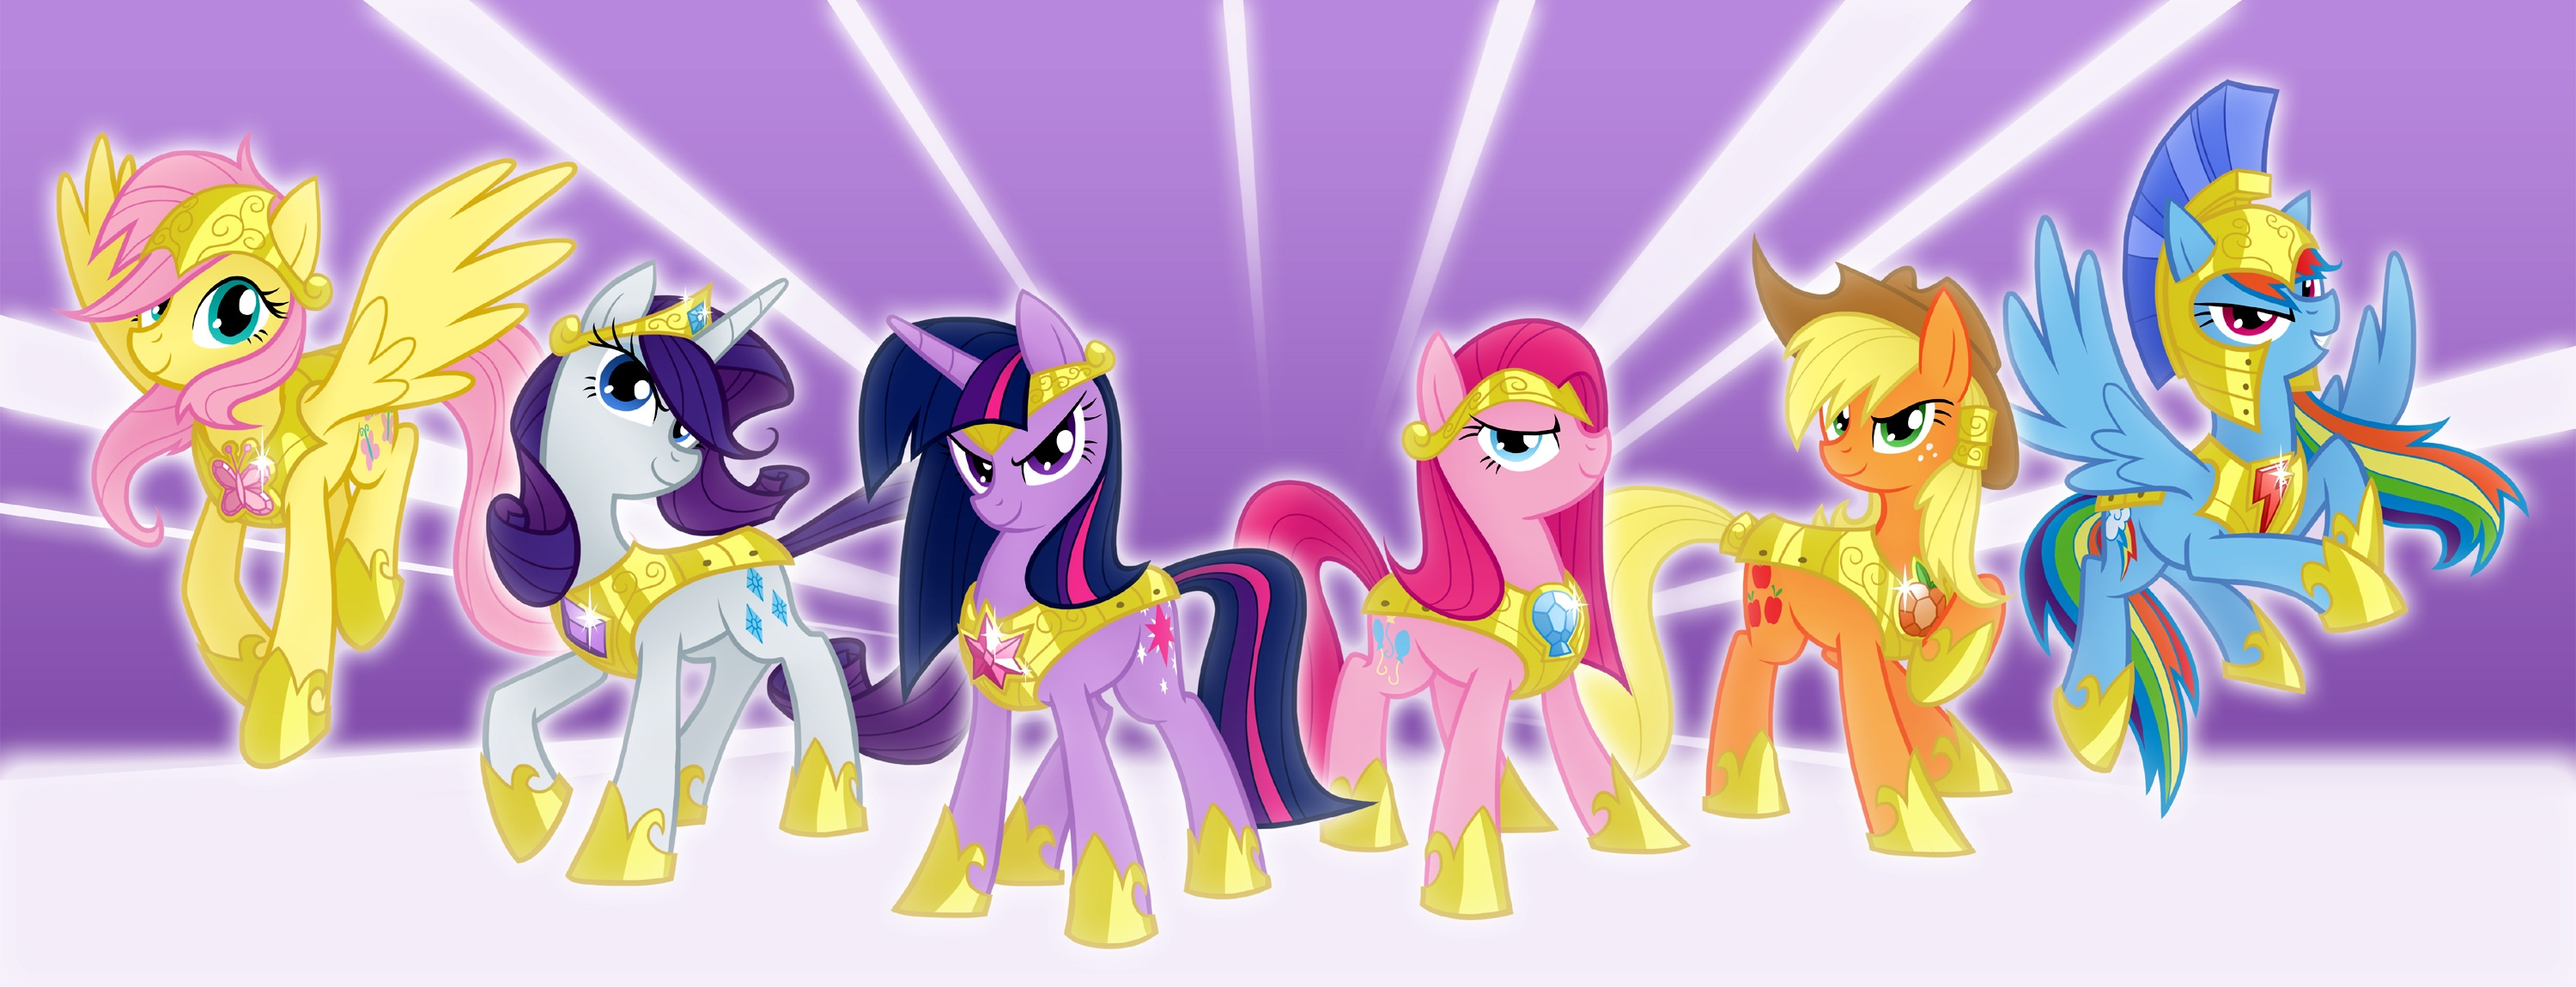 My Little Pony Friendship is Magic Mlp